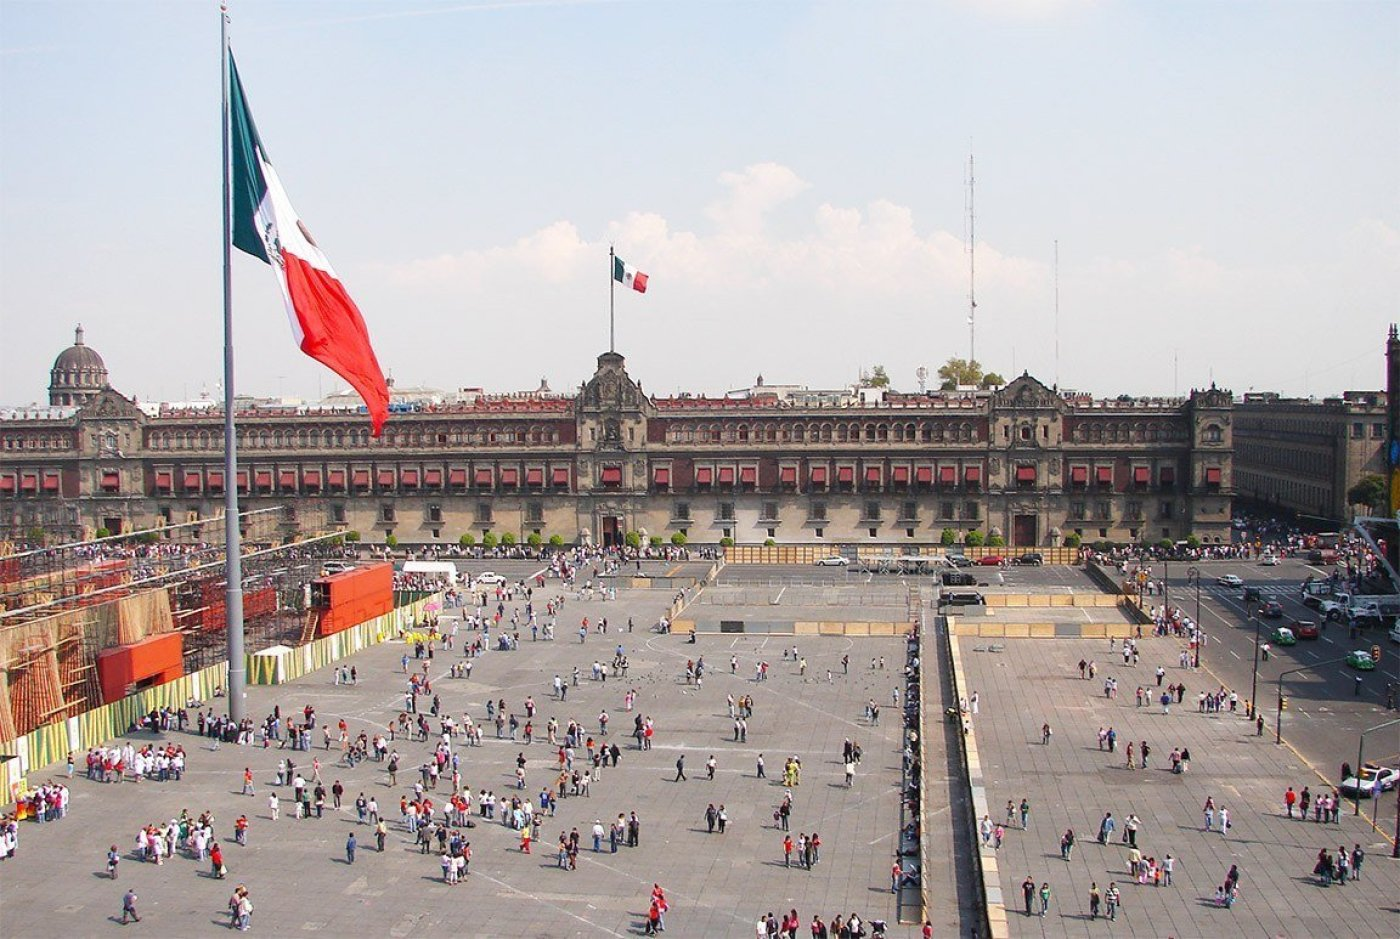 Arriving in Mexico City